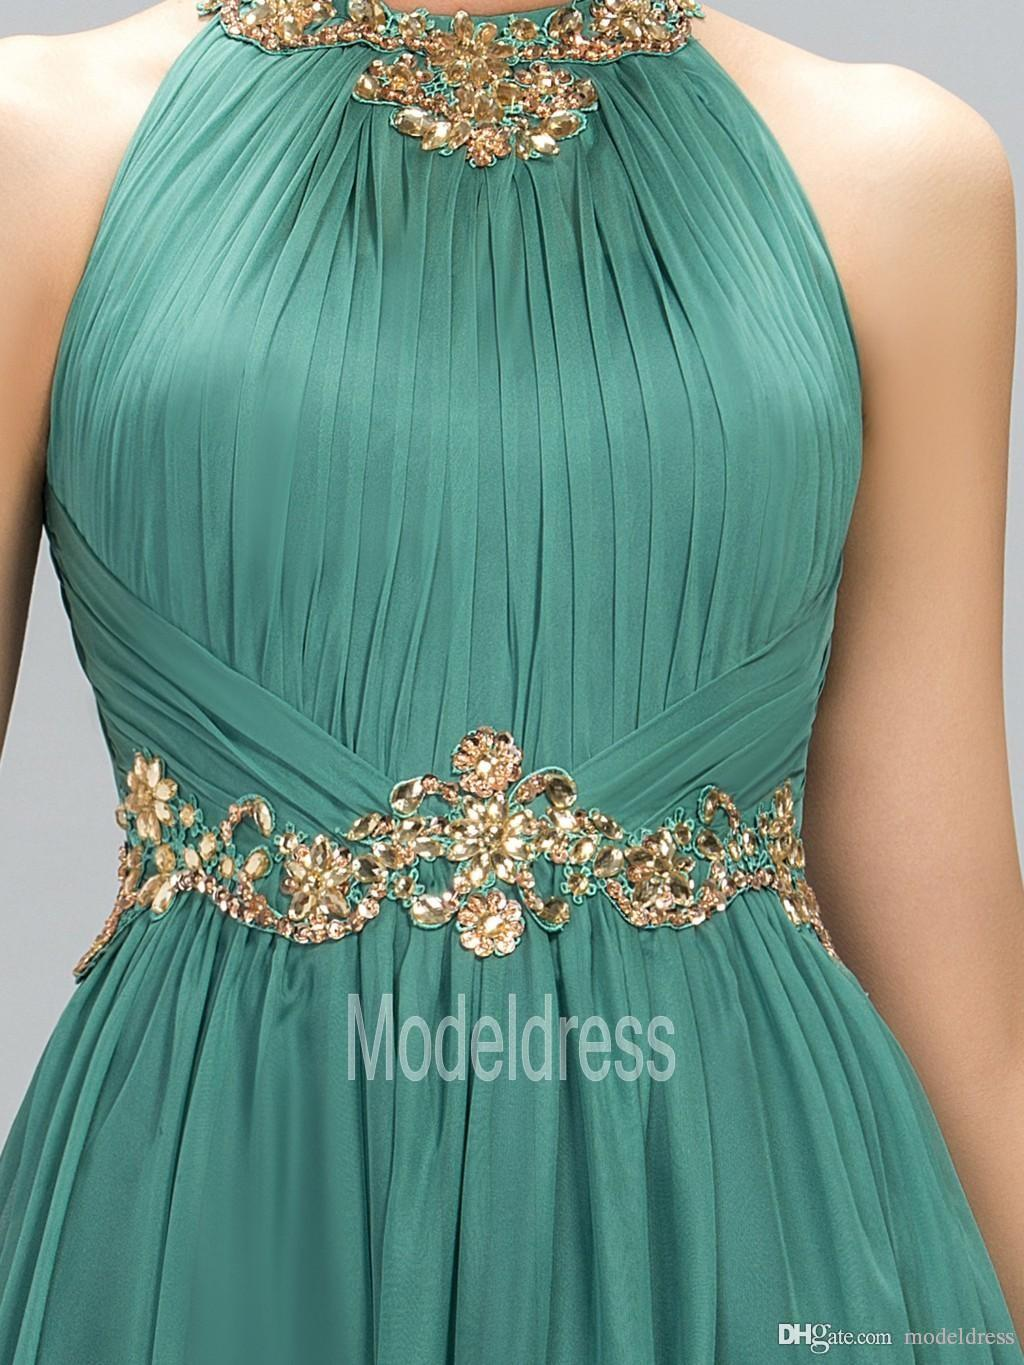 2020 New Green Prom Dresses Halter Crystal Beads Ruffles A Line Long Modest Formal Evening Party Pageant Woman Gowns Cheap Custom Made